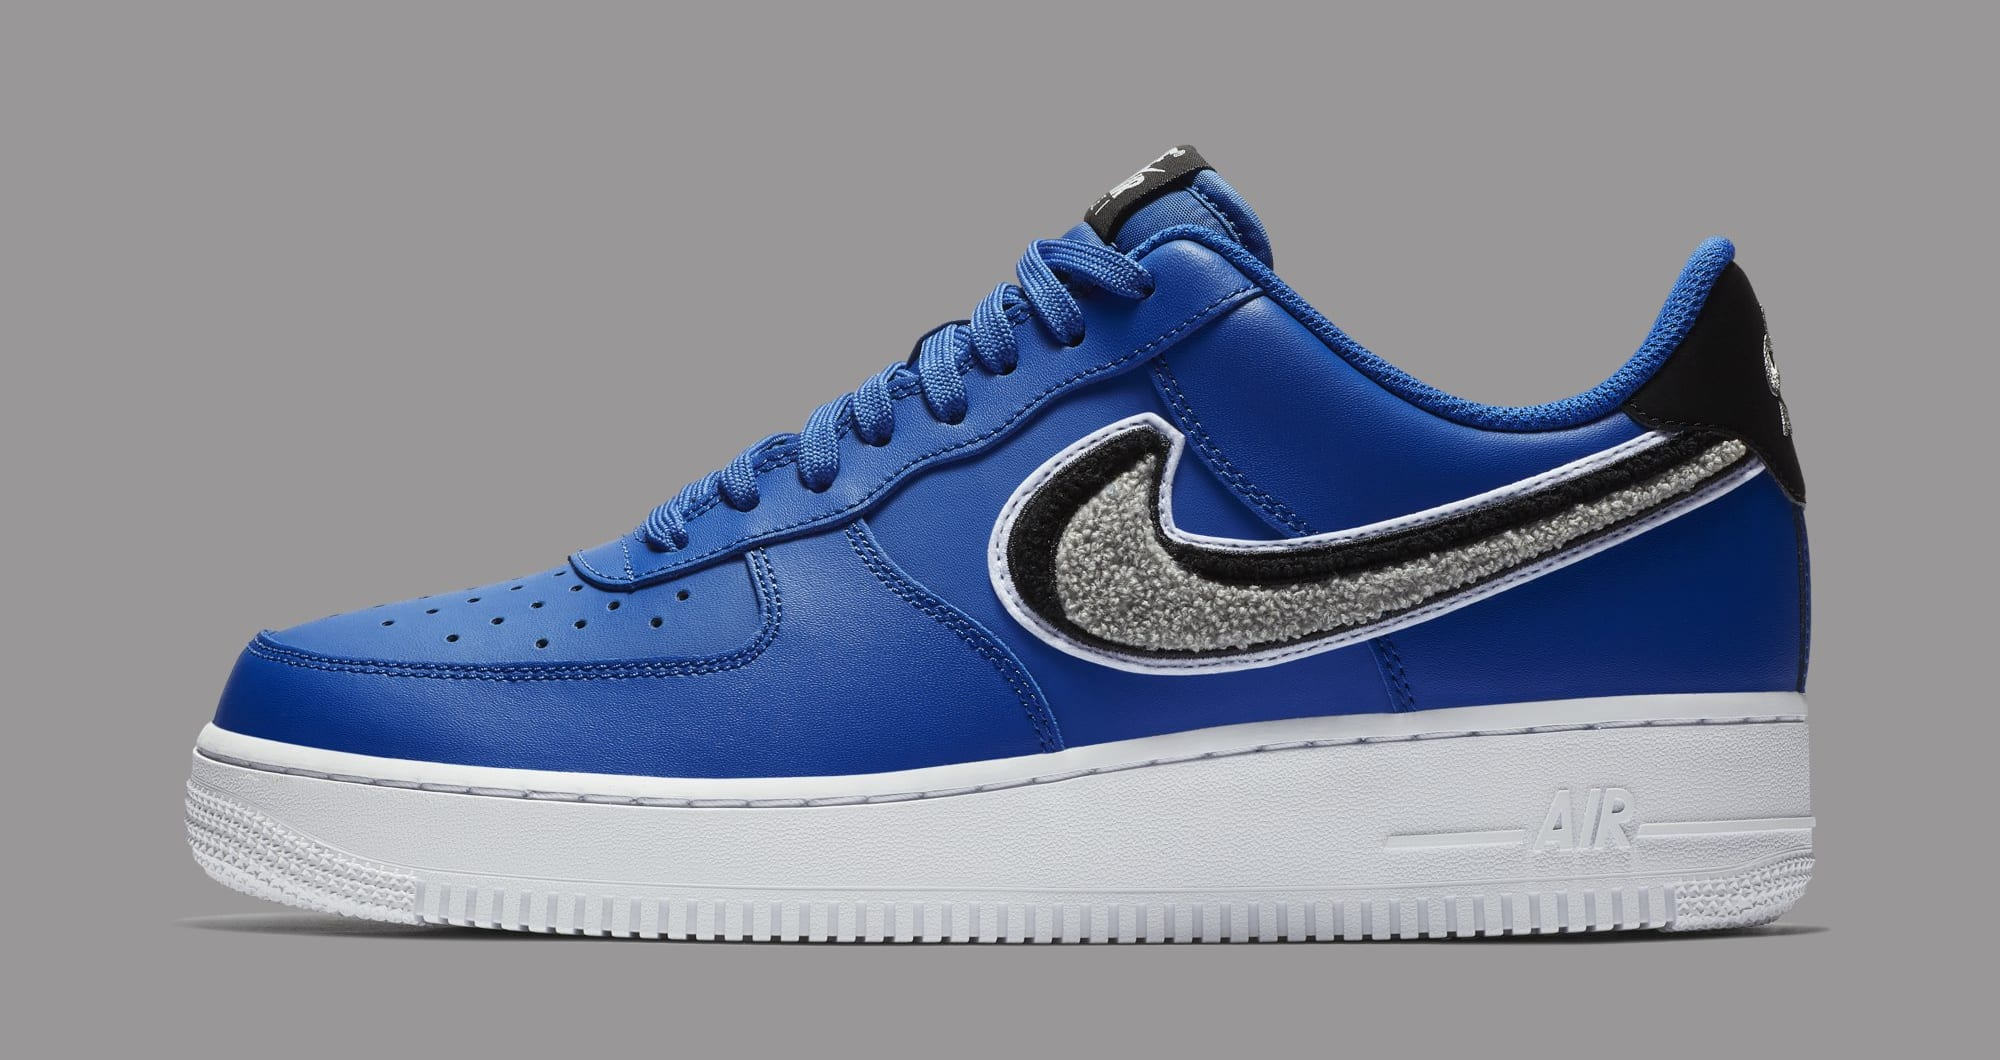 Nike Air Force 1 Low 3D Swoosh 823511-409 (Lateral)